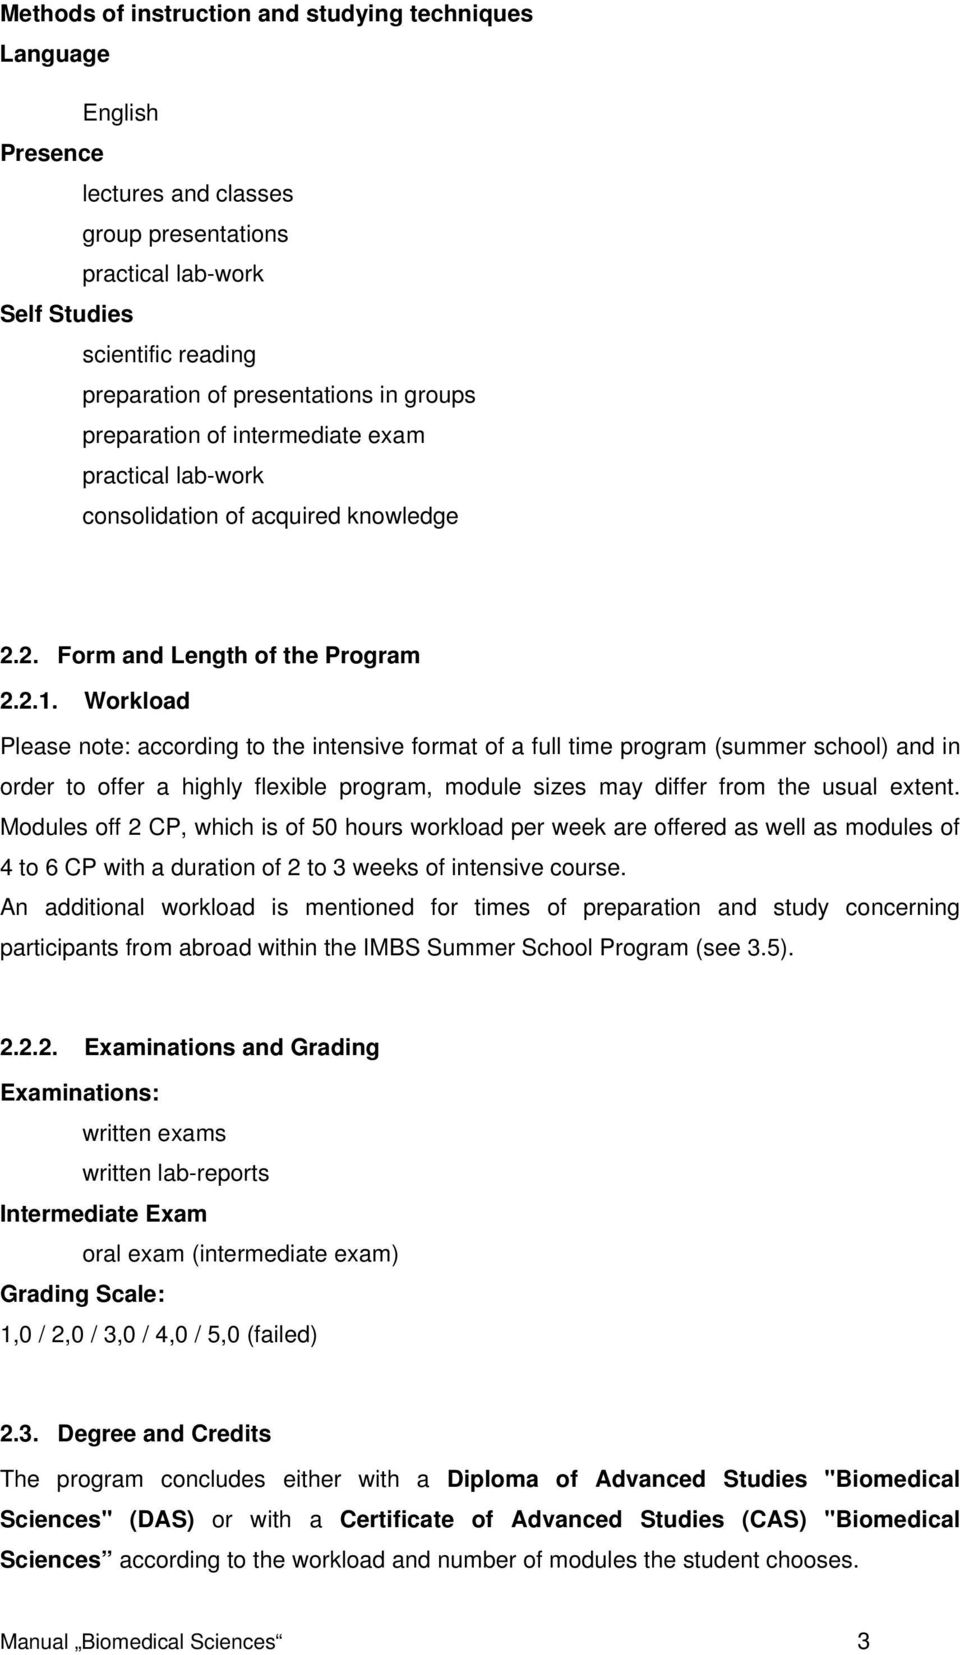 Please note: according to the intensive format of a full time program  (summer school